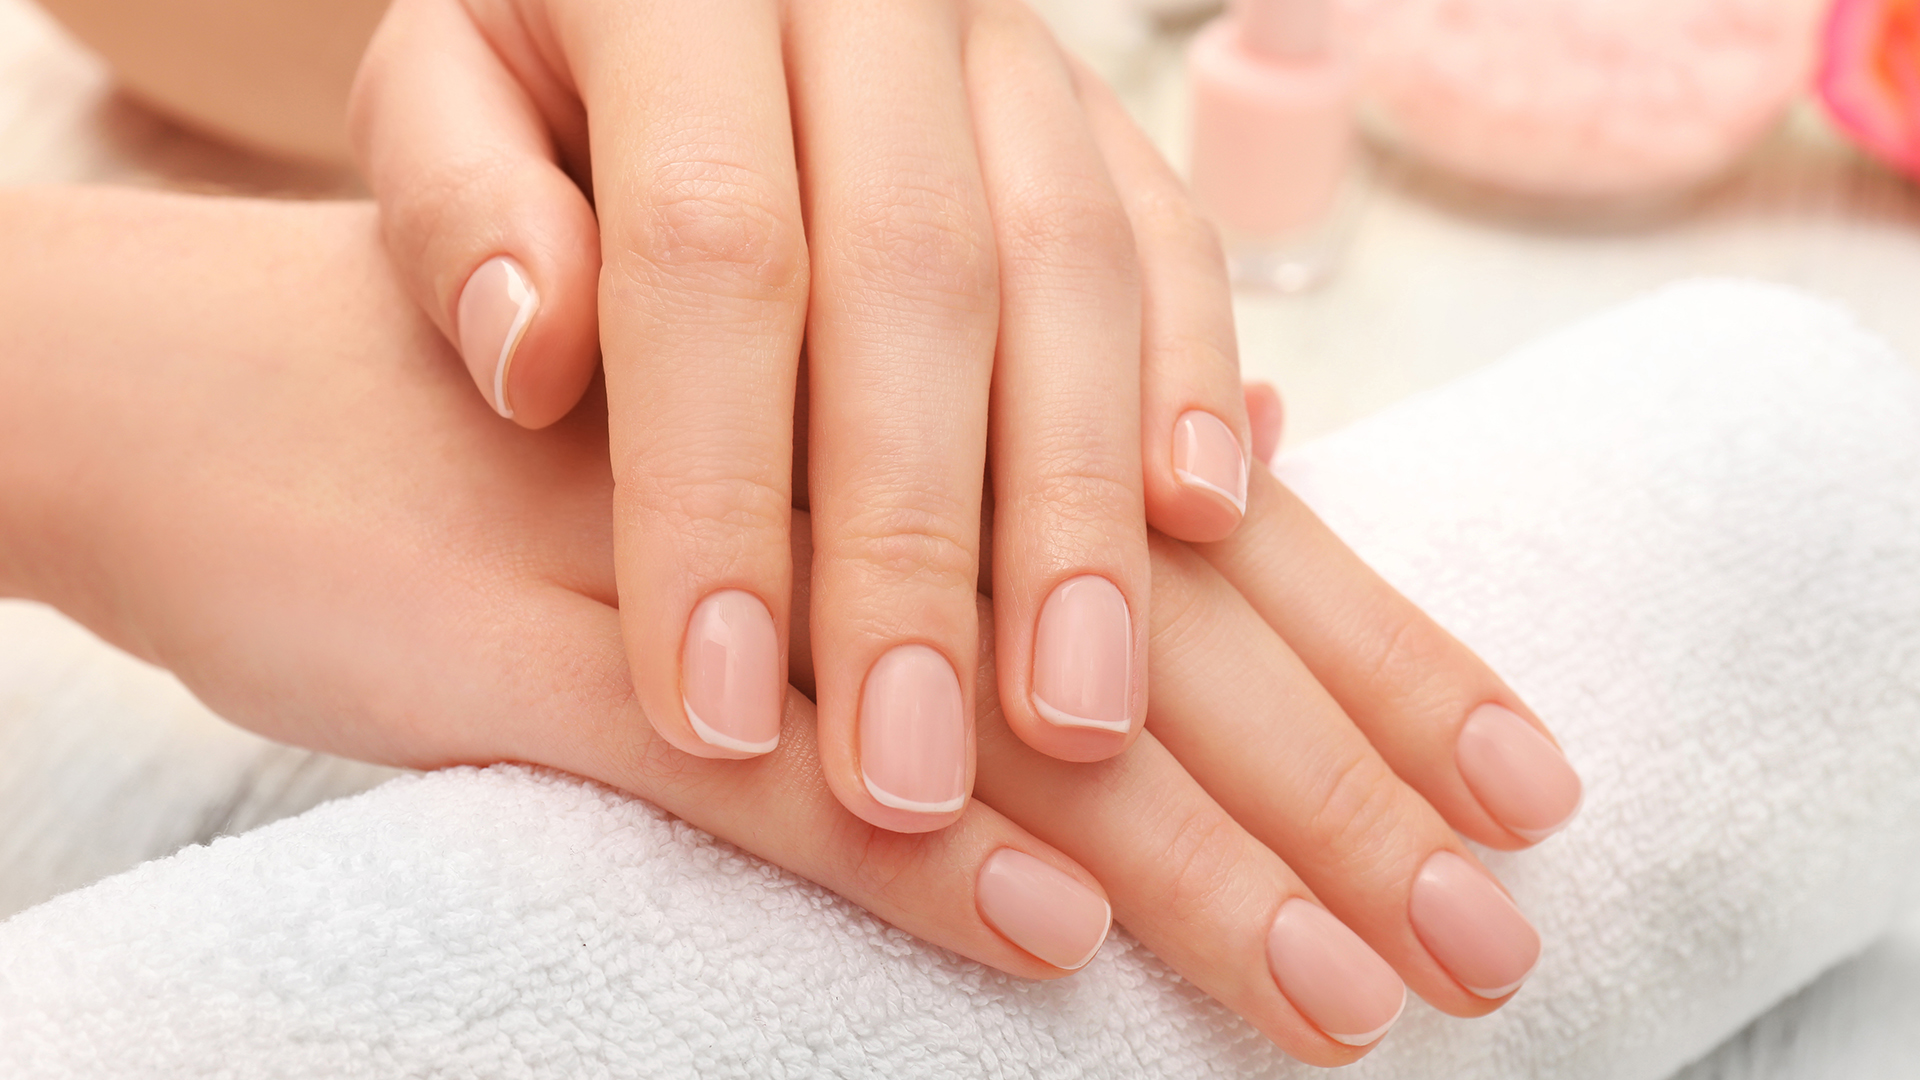 Black Skin Natural Pink Nail Bed